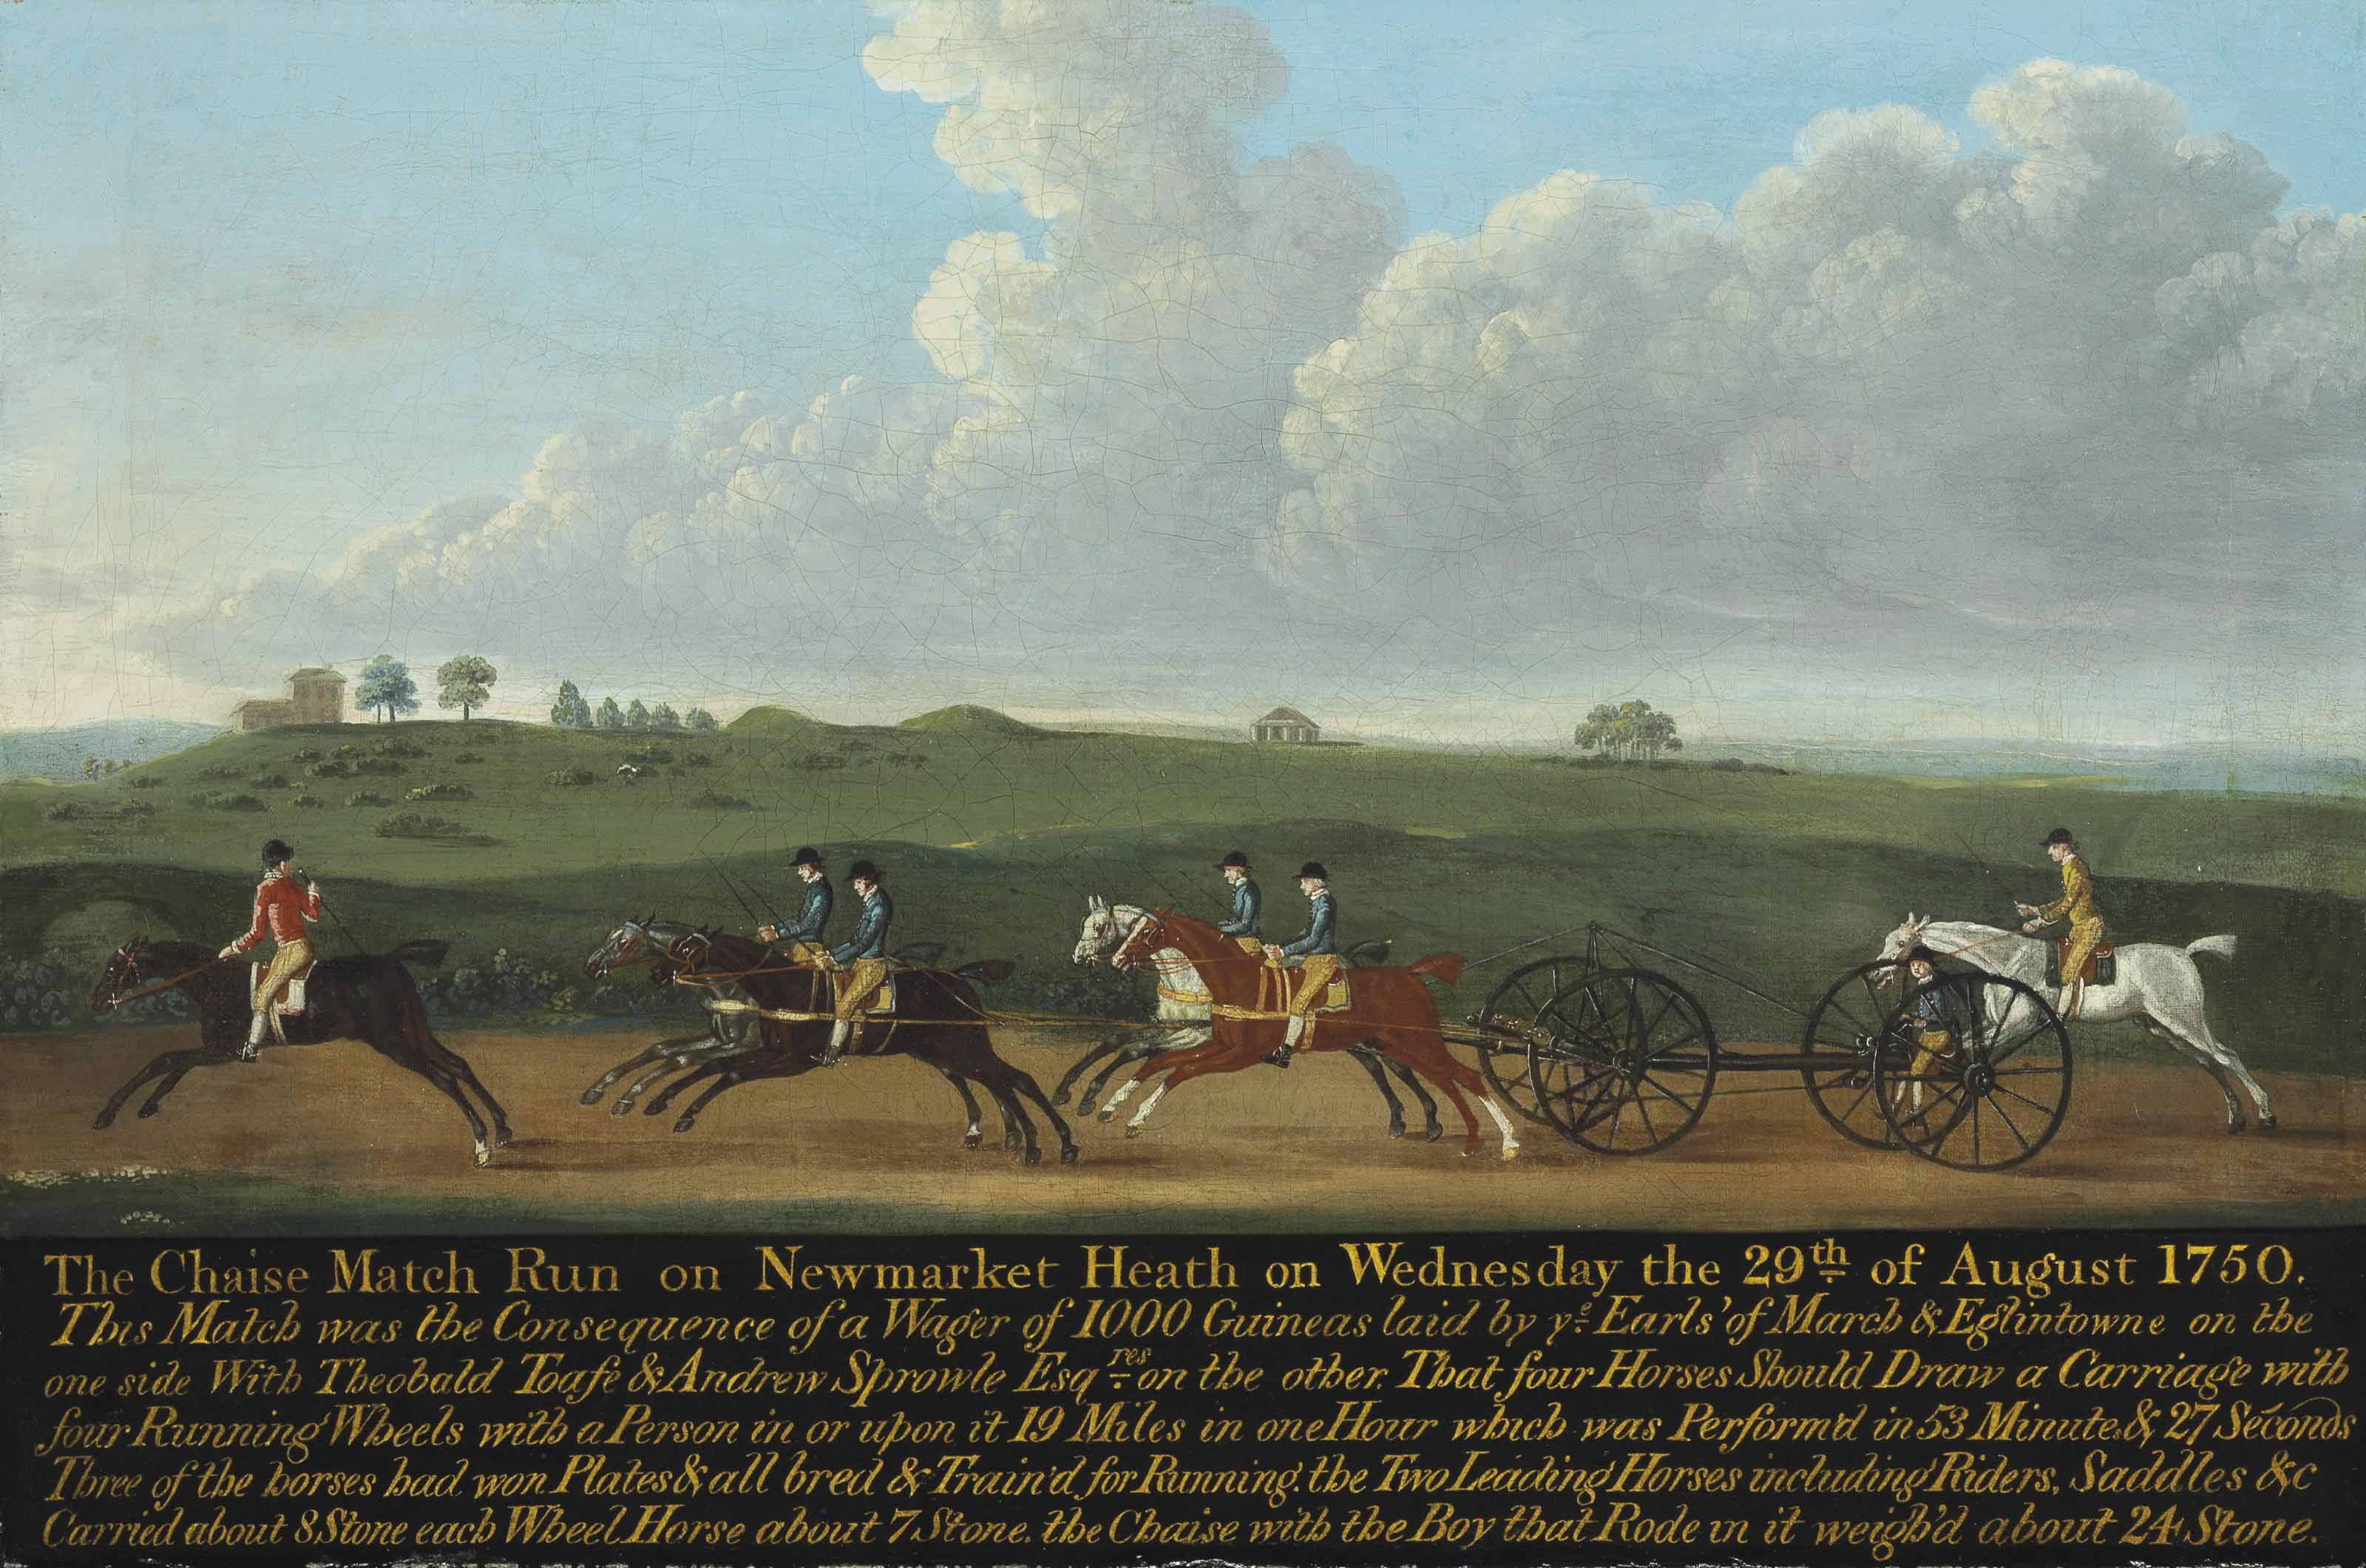 The chaise match run on Newmarket Heath on Wednesday 29 August 1750